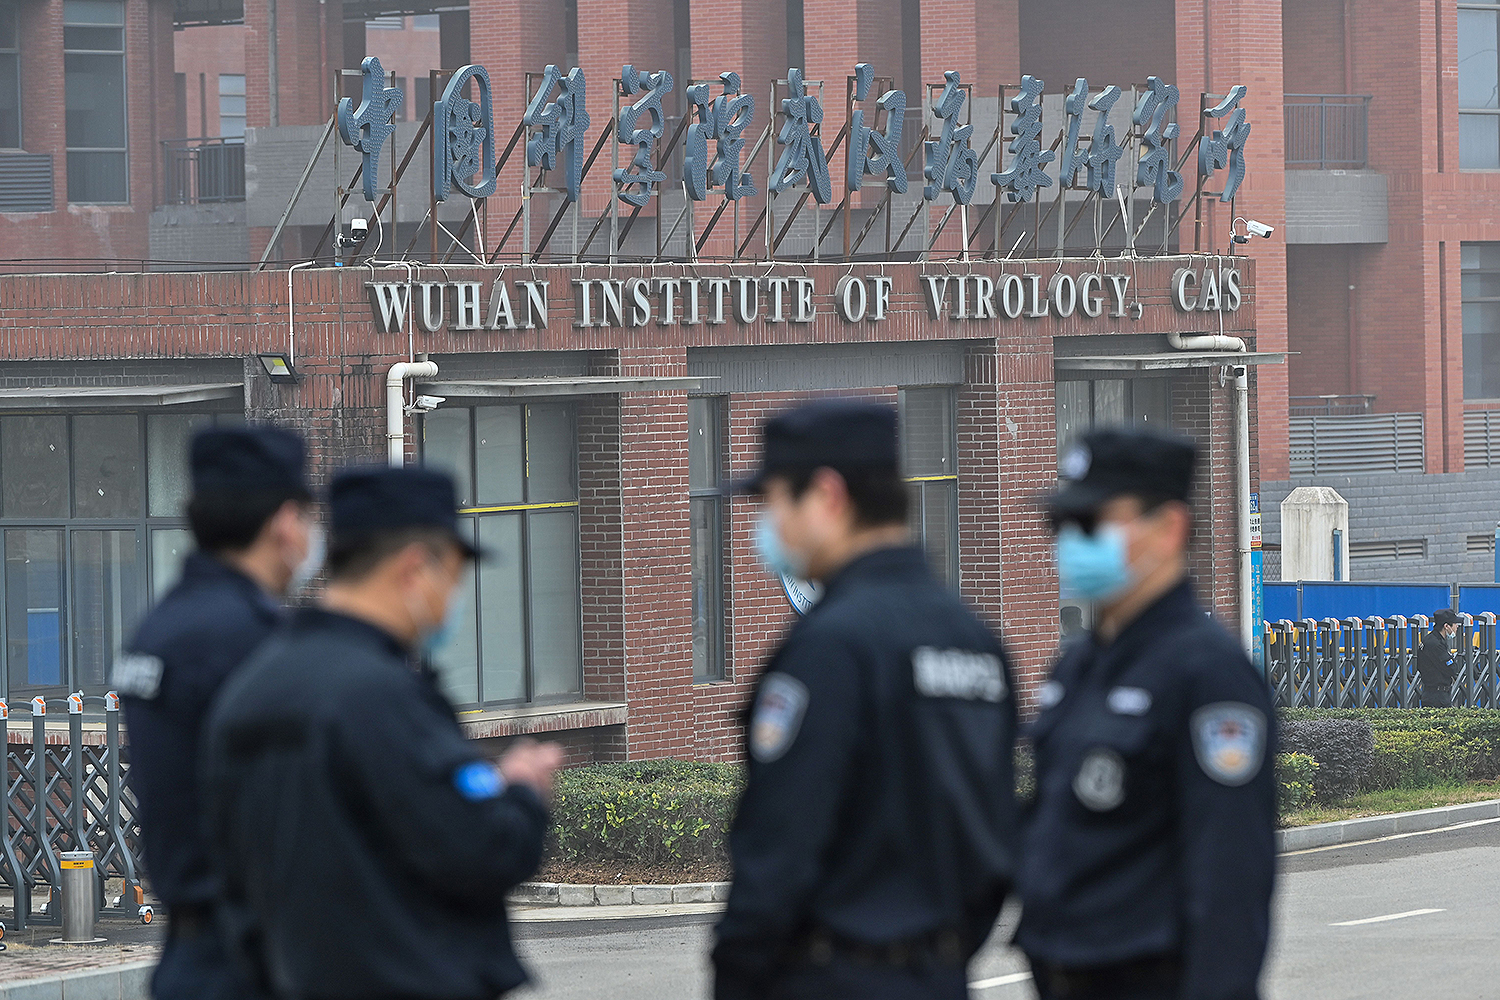 Security personnel stand guard outside the Wuhan Institute of Virology in Wuhan, China, during a visit by members of the World Health Organization team investigating the origins of COVID-19 on Feb. 3.